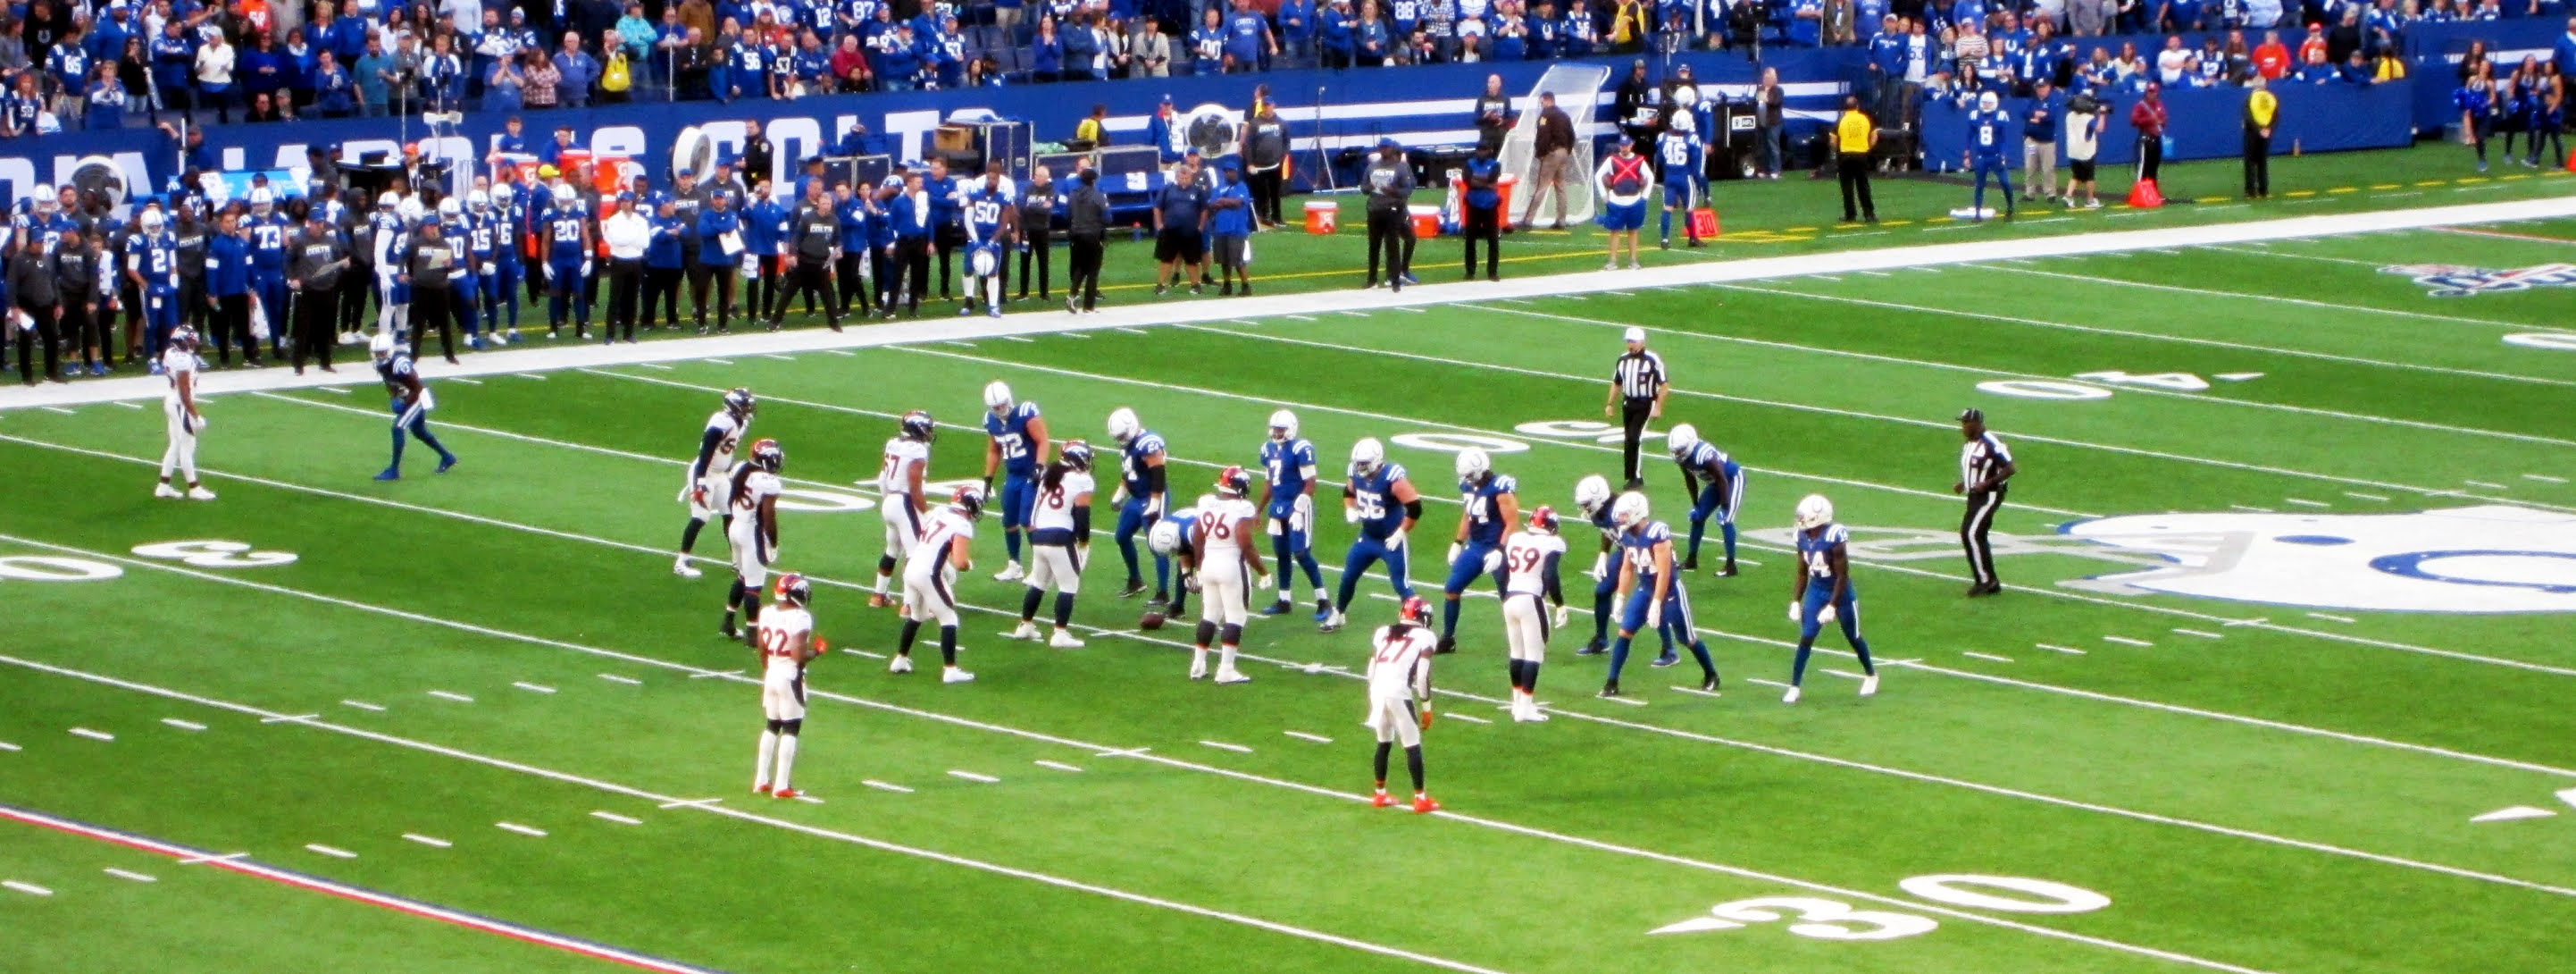 Indianapolis Colts taking prepare to take an offensive snap against the Denver Broncos